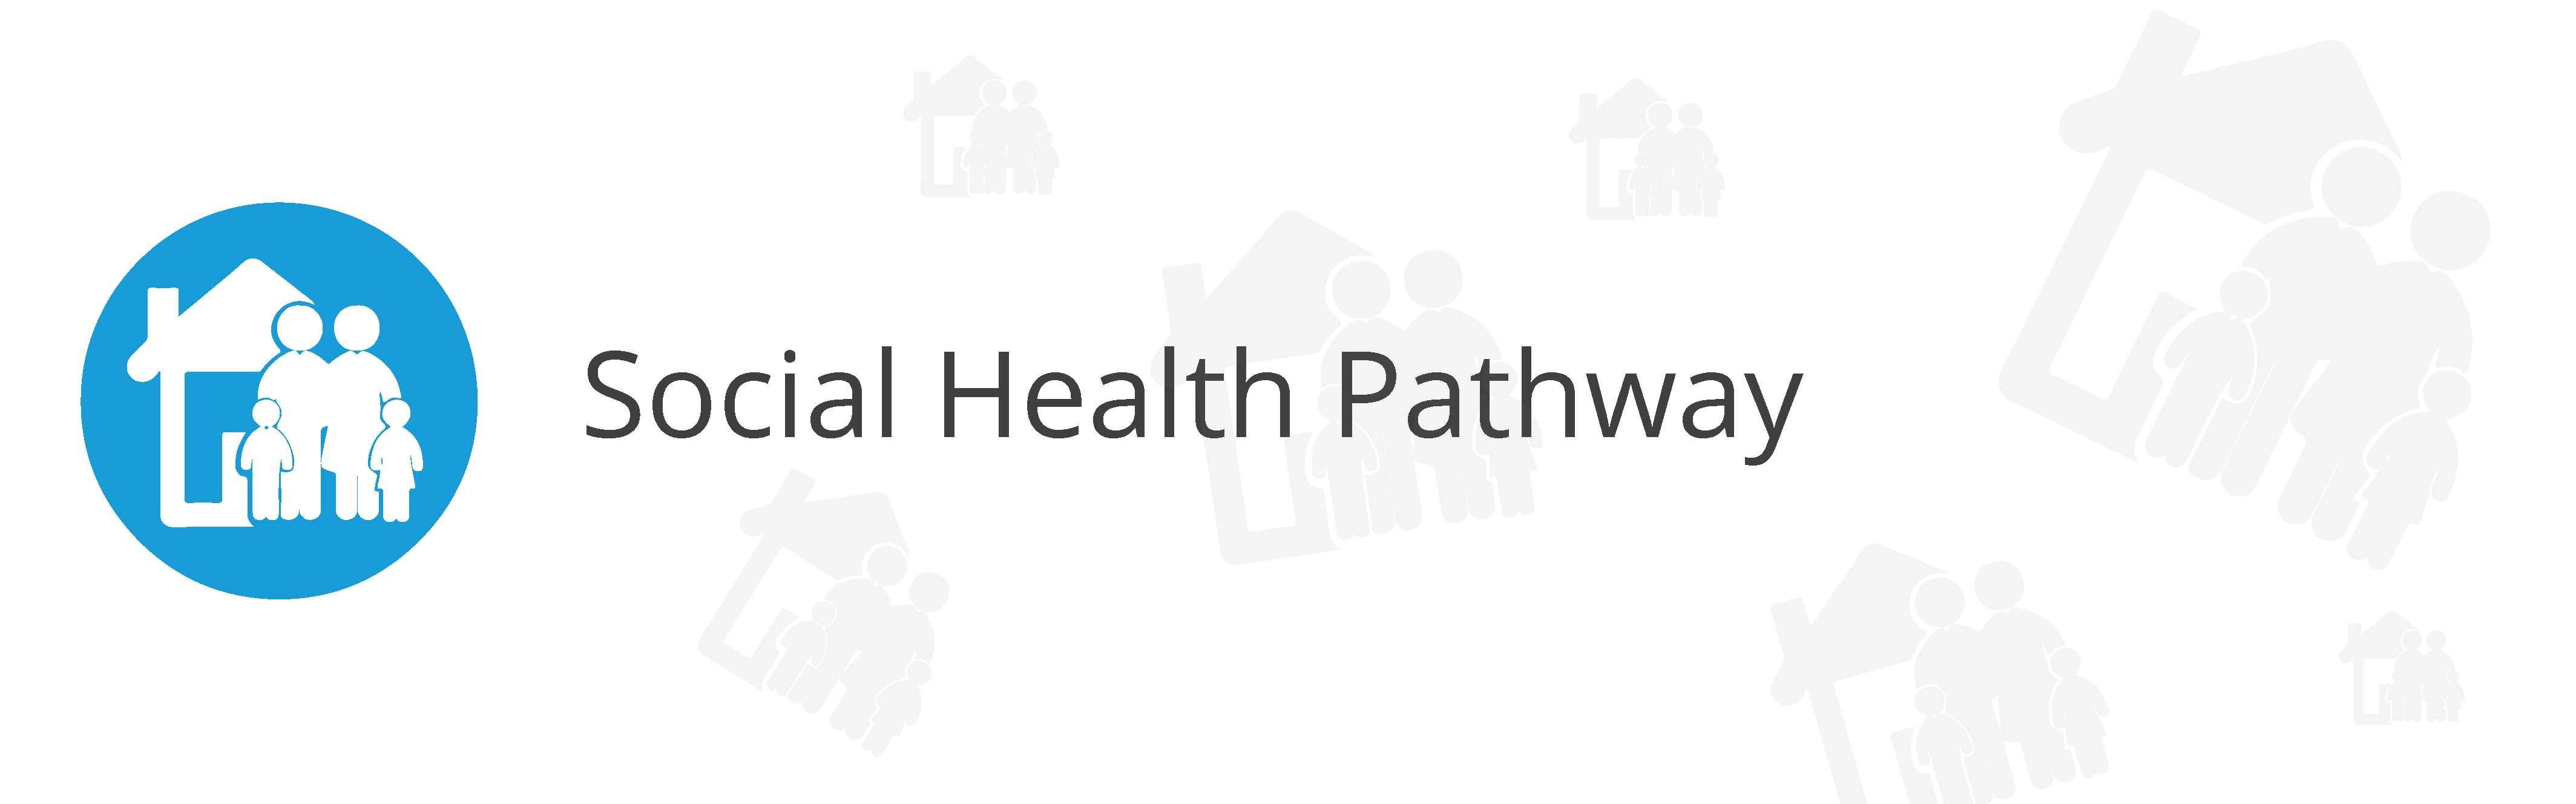 Blue Circle with White House and family Icons inside & Social Health Pathway Text in Black